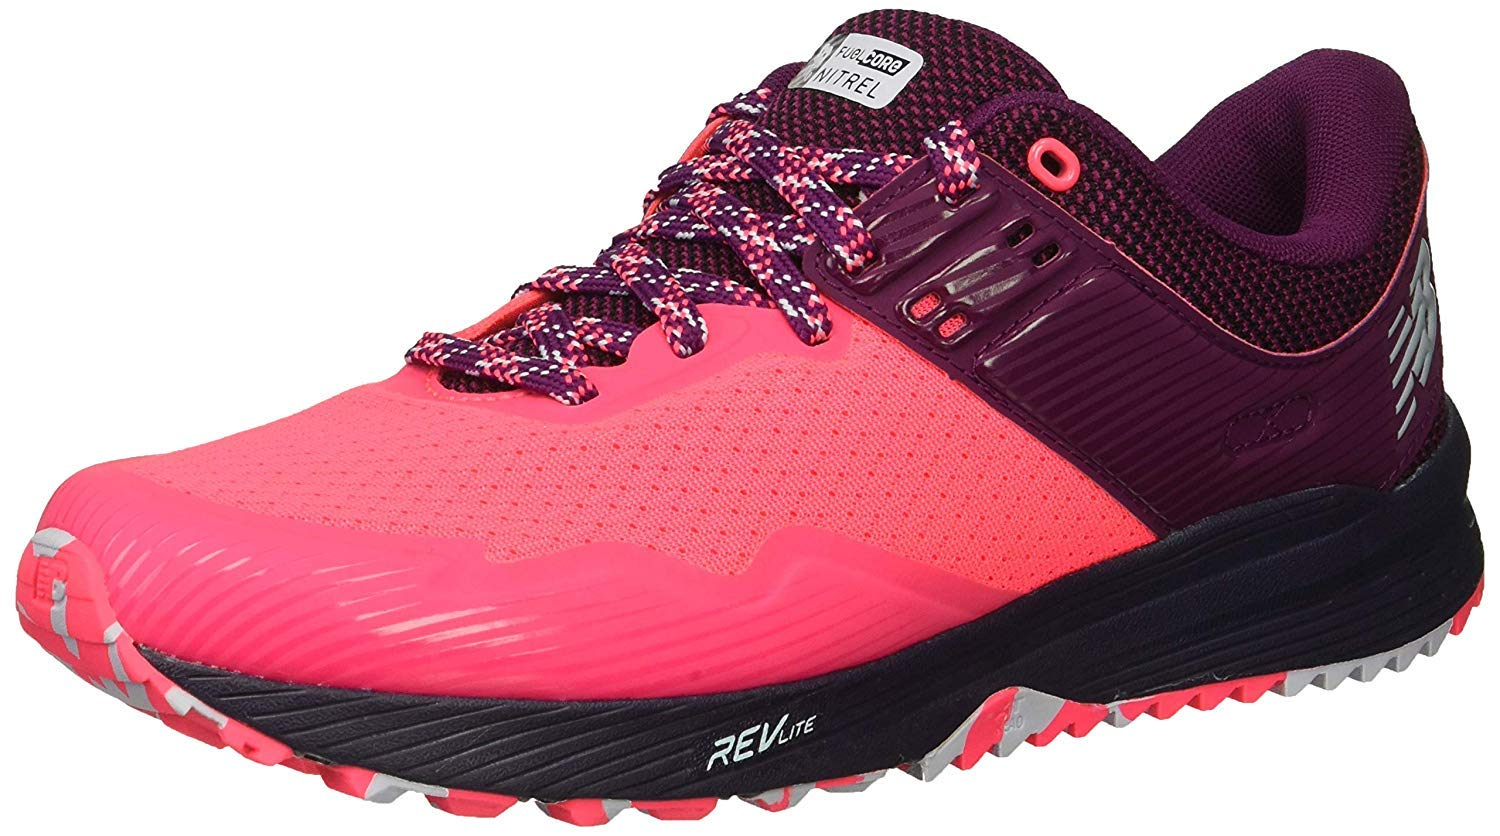 New Balance Women's Nitrel V2 FuelCore Trail Running Shoe, Pink zing/Claret/Pigment, 5.5 D US by New Balance (Image #1)